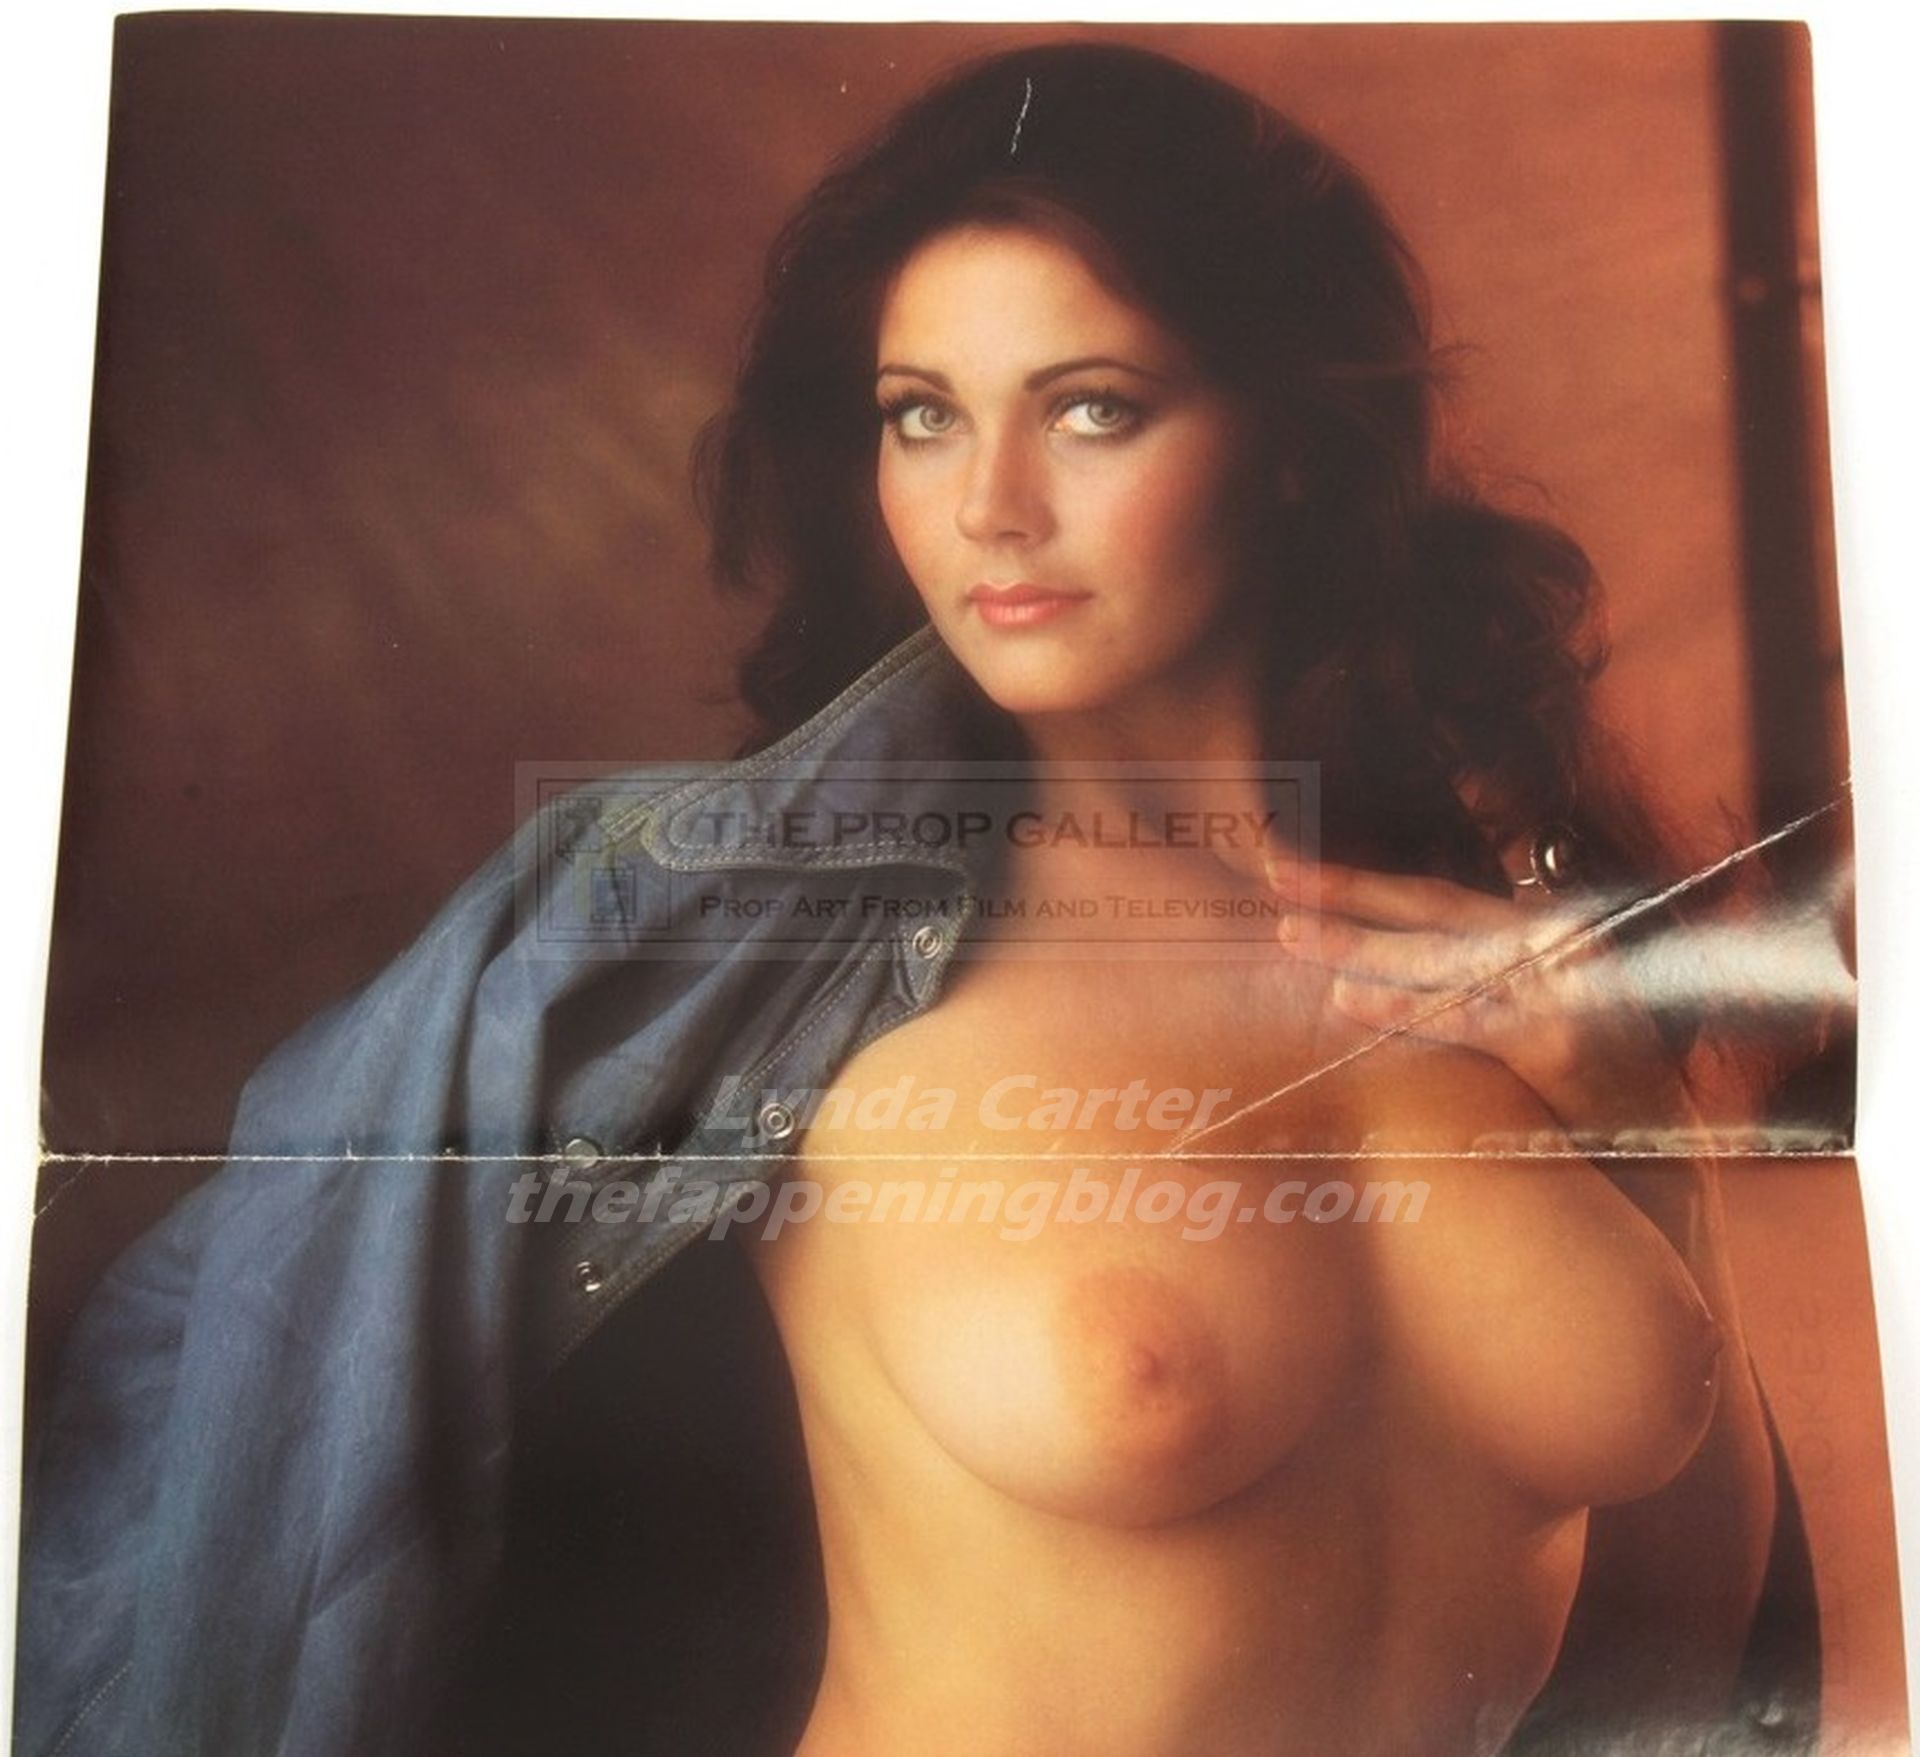 Lynda carter tits out